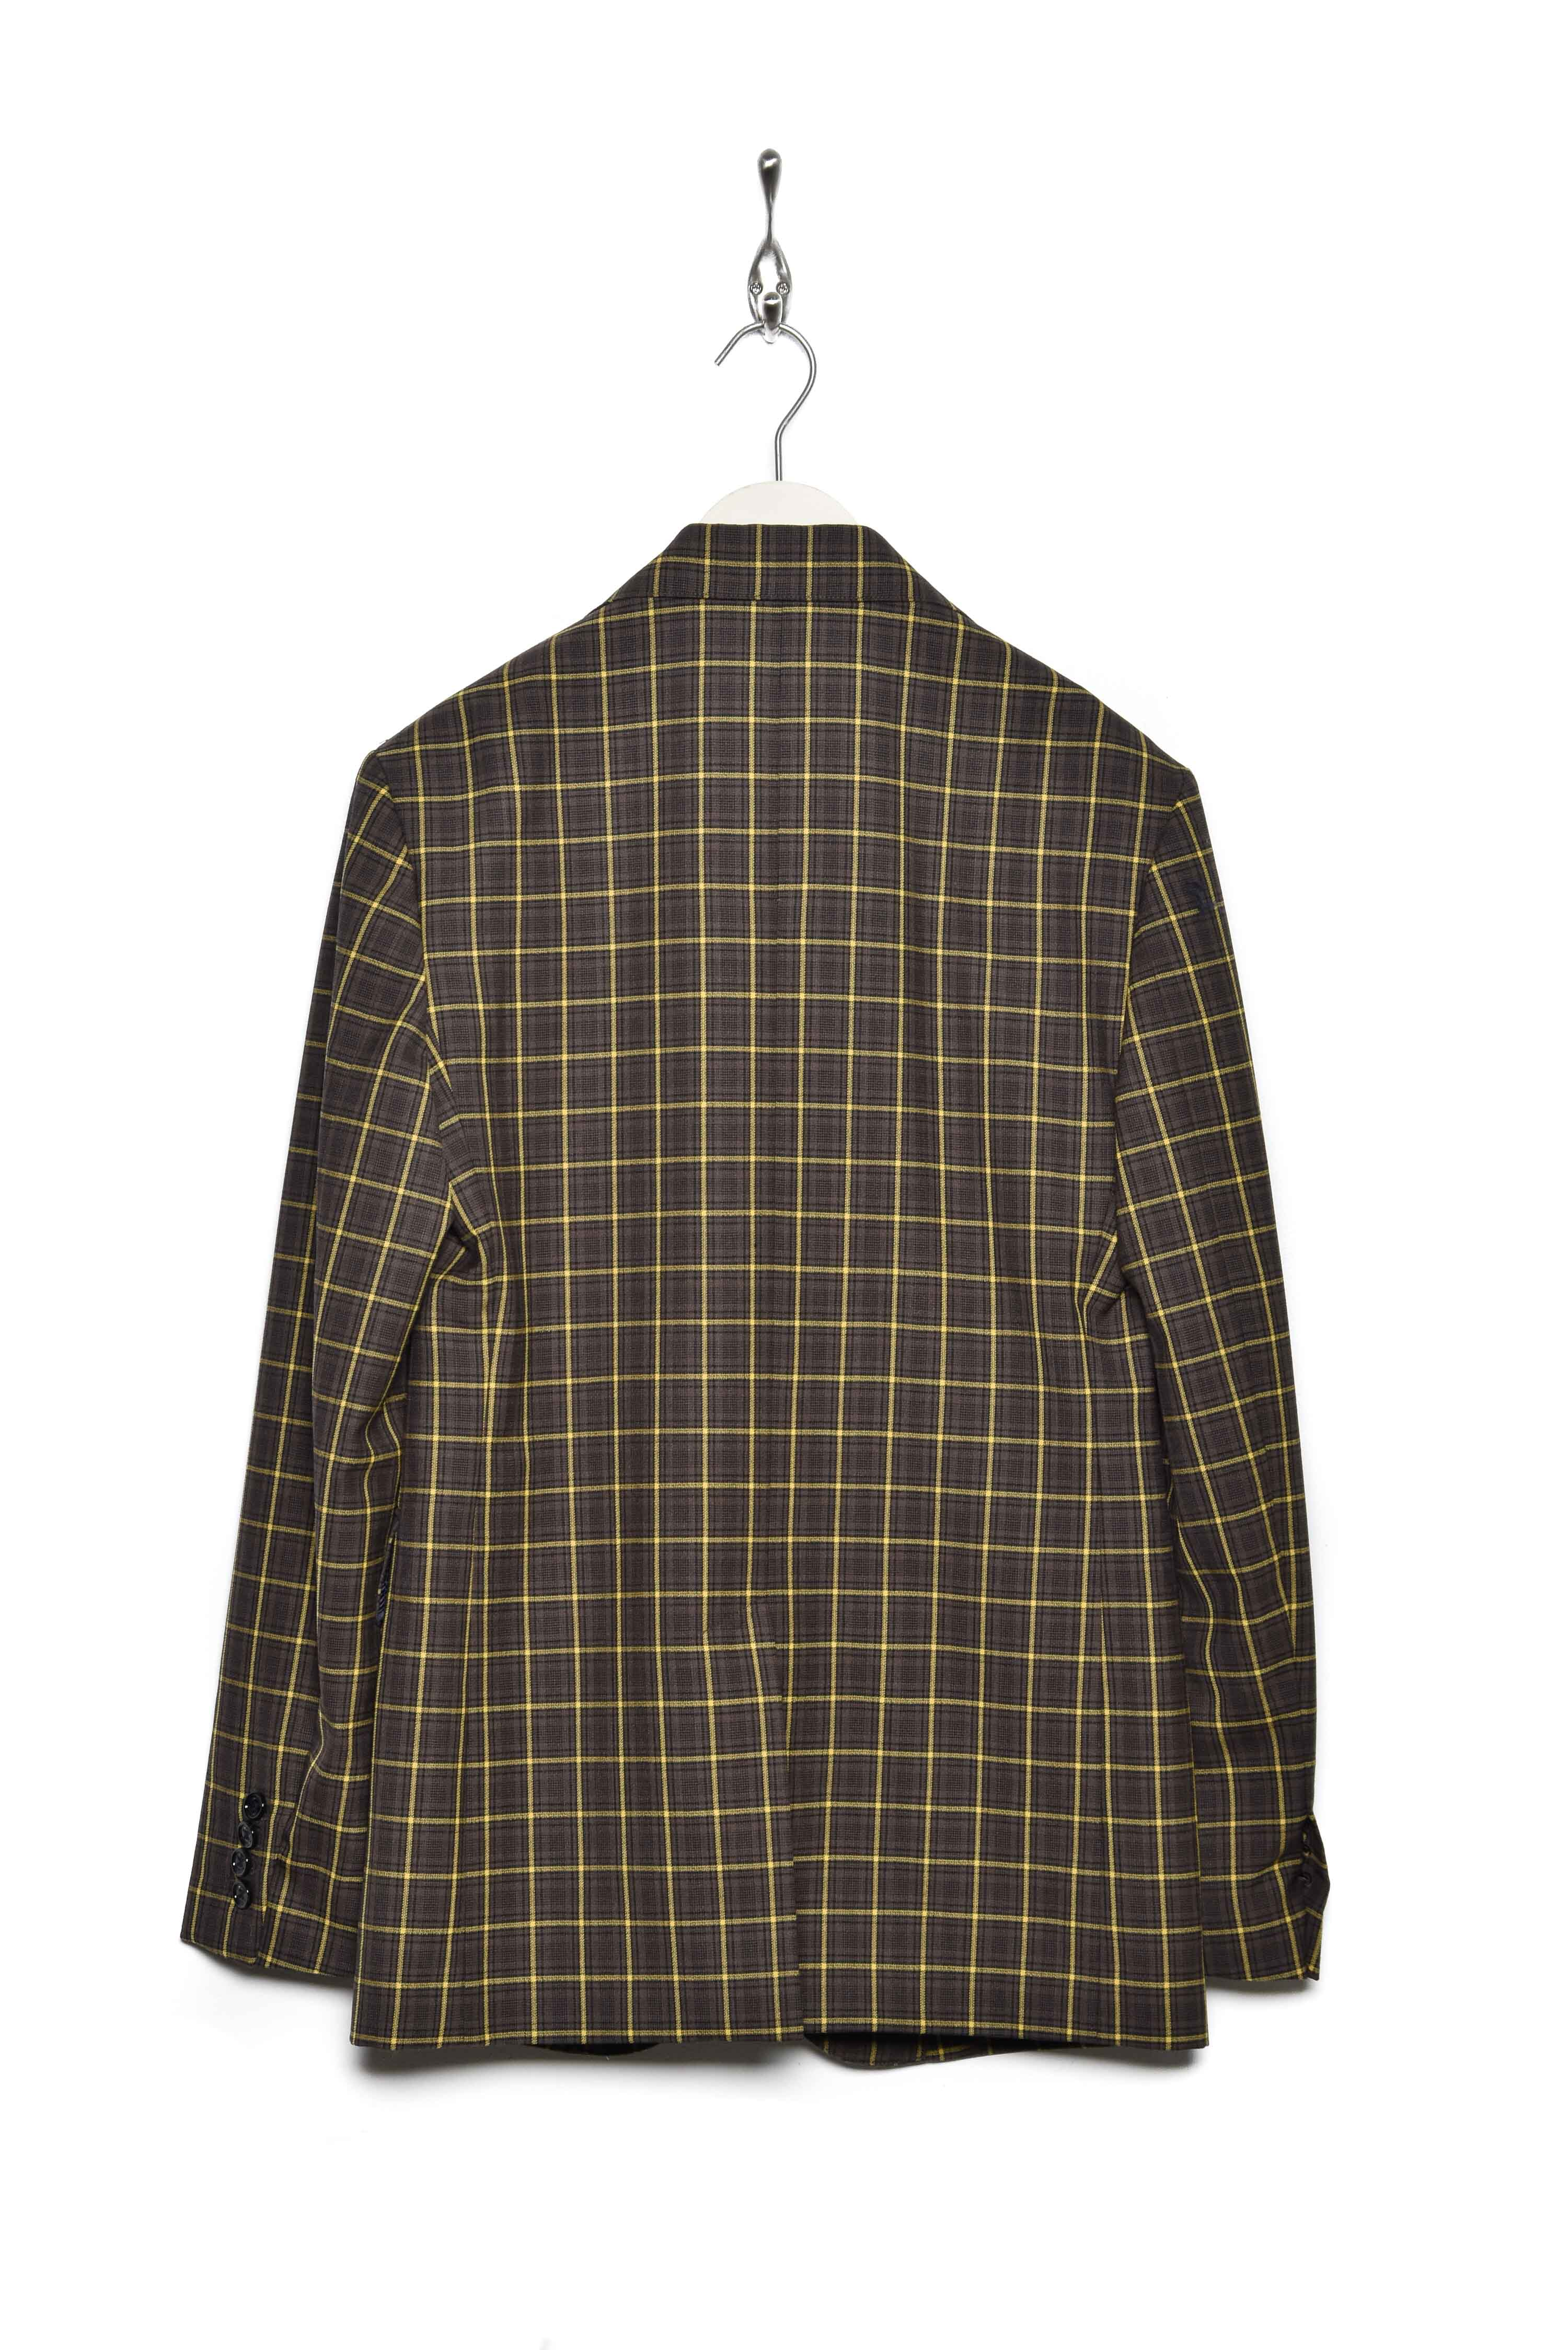 Band of Outsiders 1 Button Jacket heritage check 3001 brown